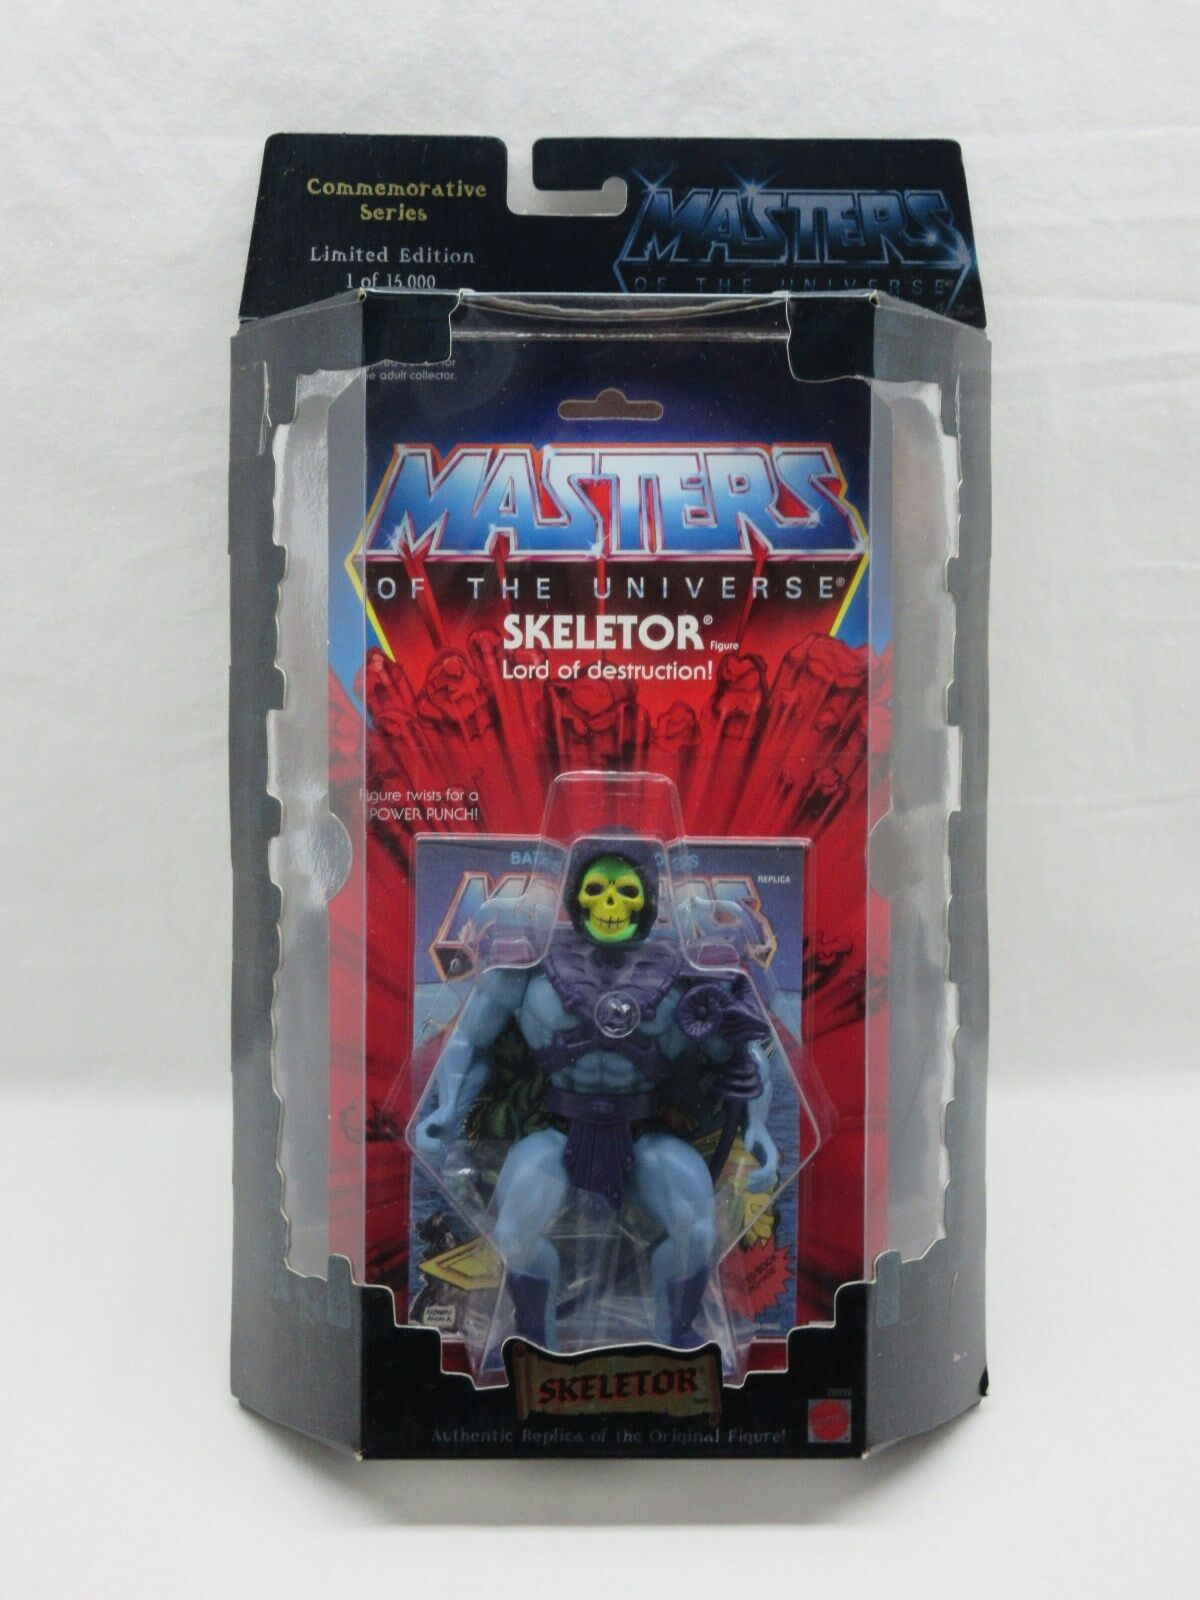 MOTU,Commemorative SKELETOR,MISB,sealed,Masters of the Universe,MOC,He-man